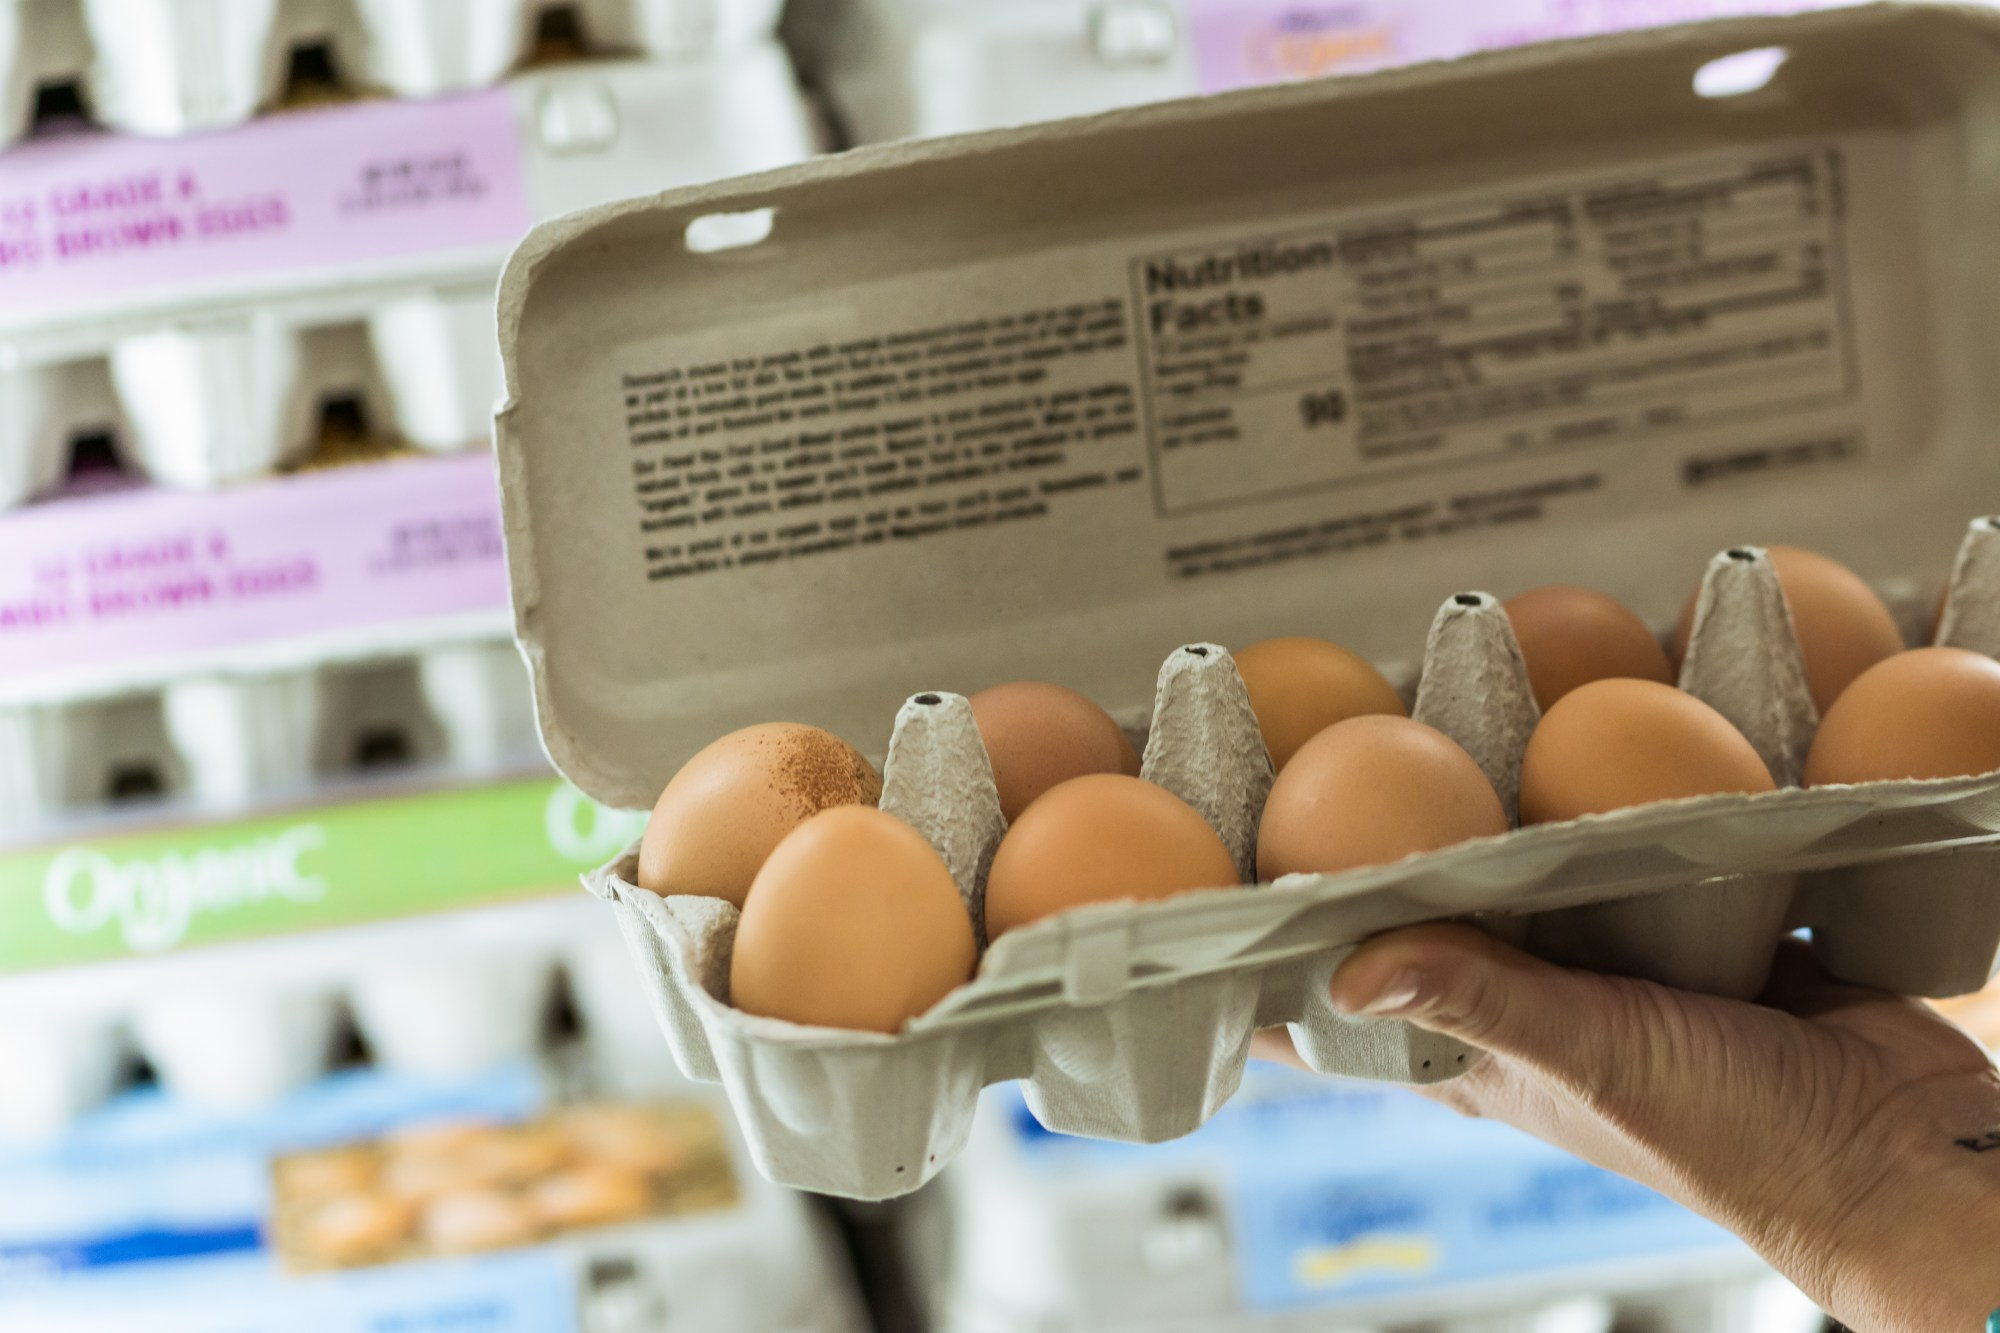 A woman holds up a carton of eggs at a grocery store in this file photo. (Getty Images)